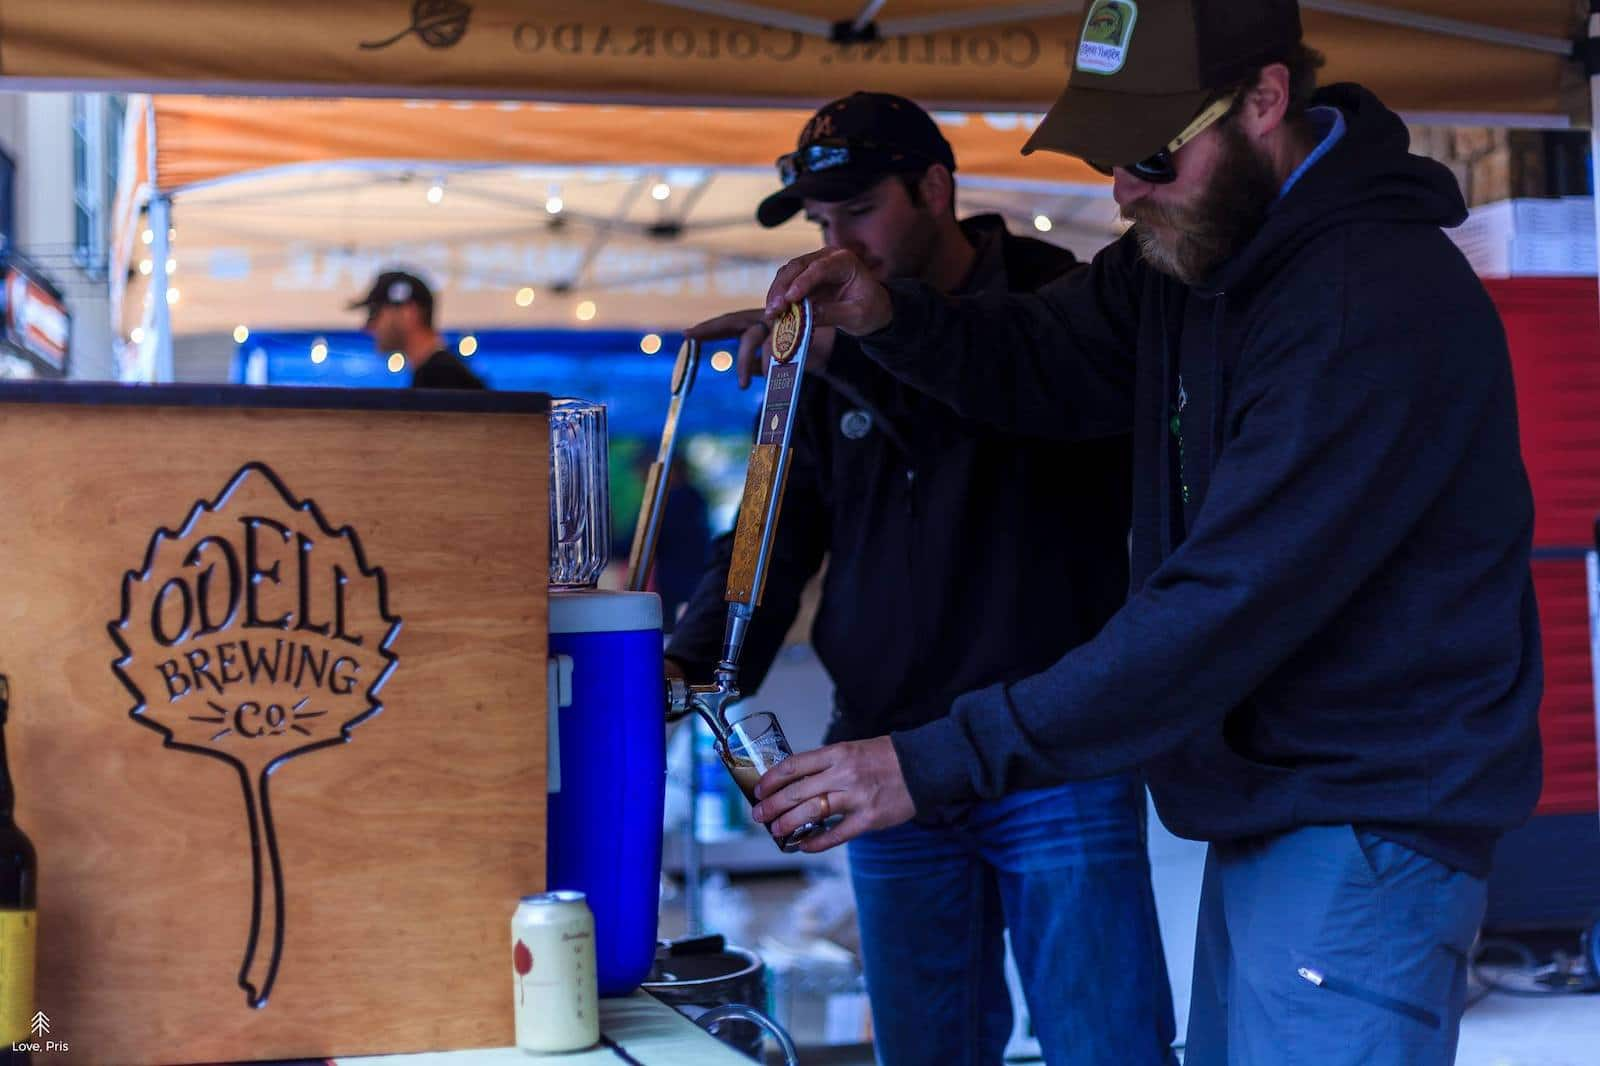 Image of guys at the Odell Brewing Co booth at Breckenridge Strings, Beers, and Ciders festival in colorado